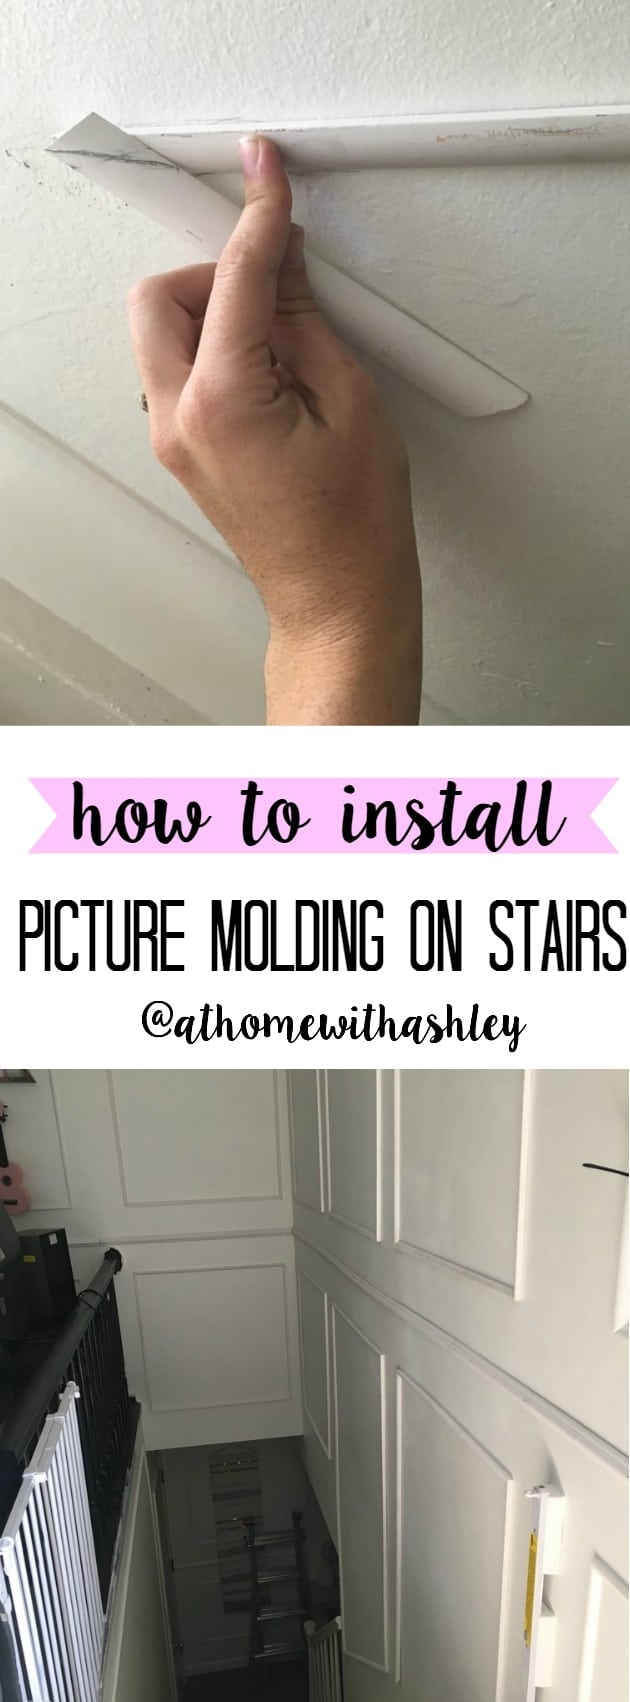 how-to-install-picture-molding-on-stairs